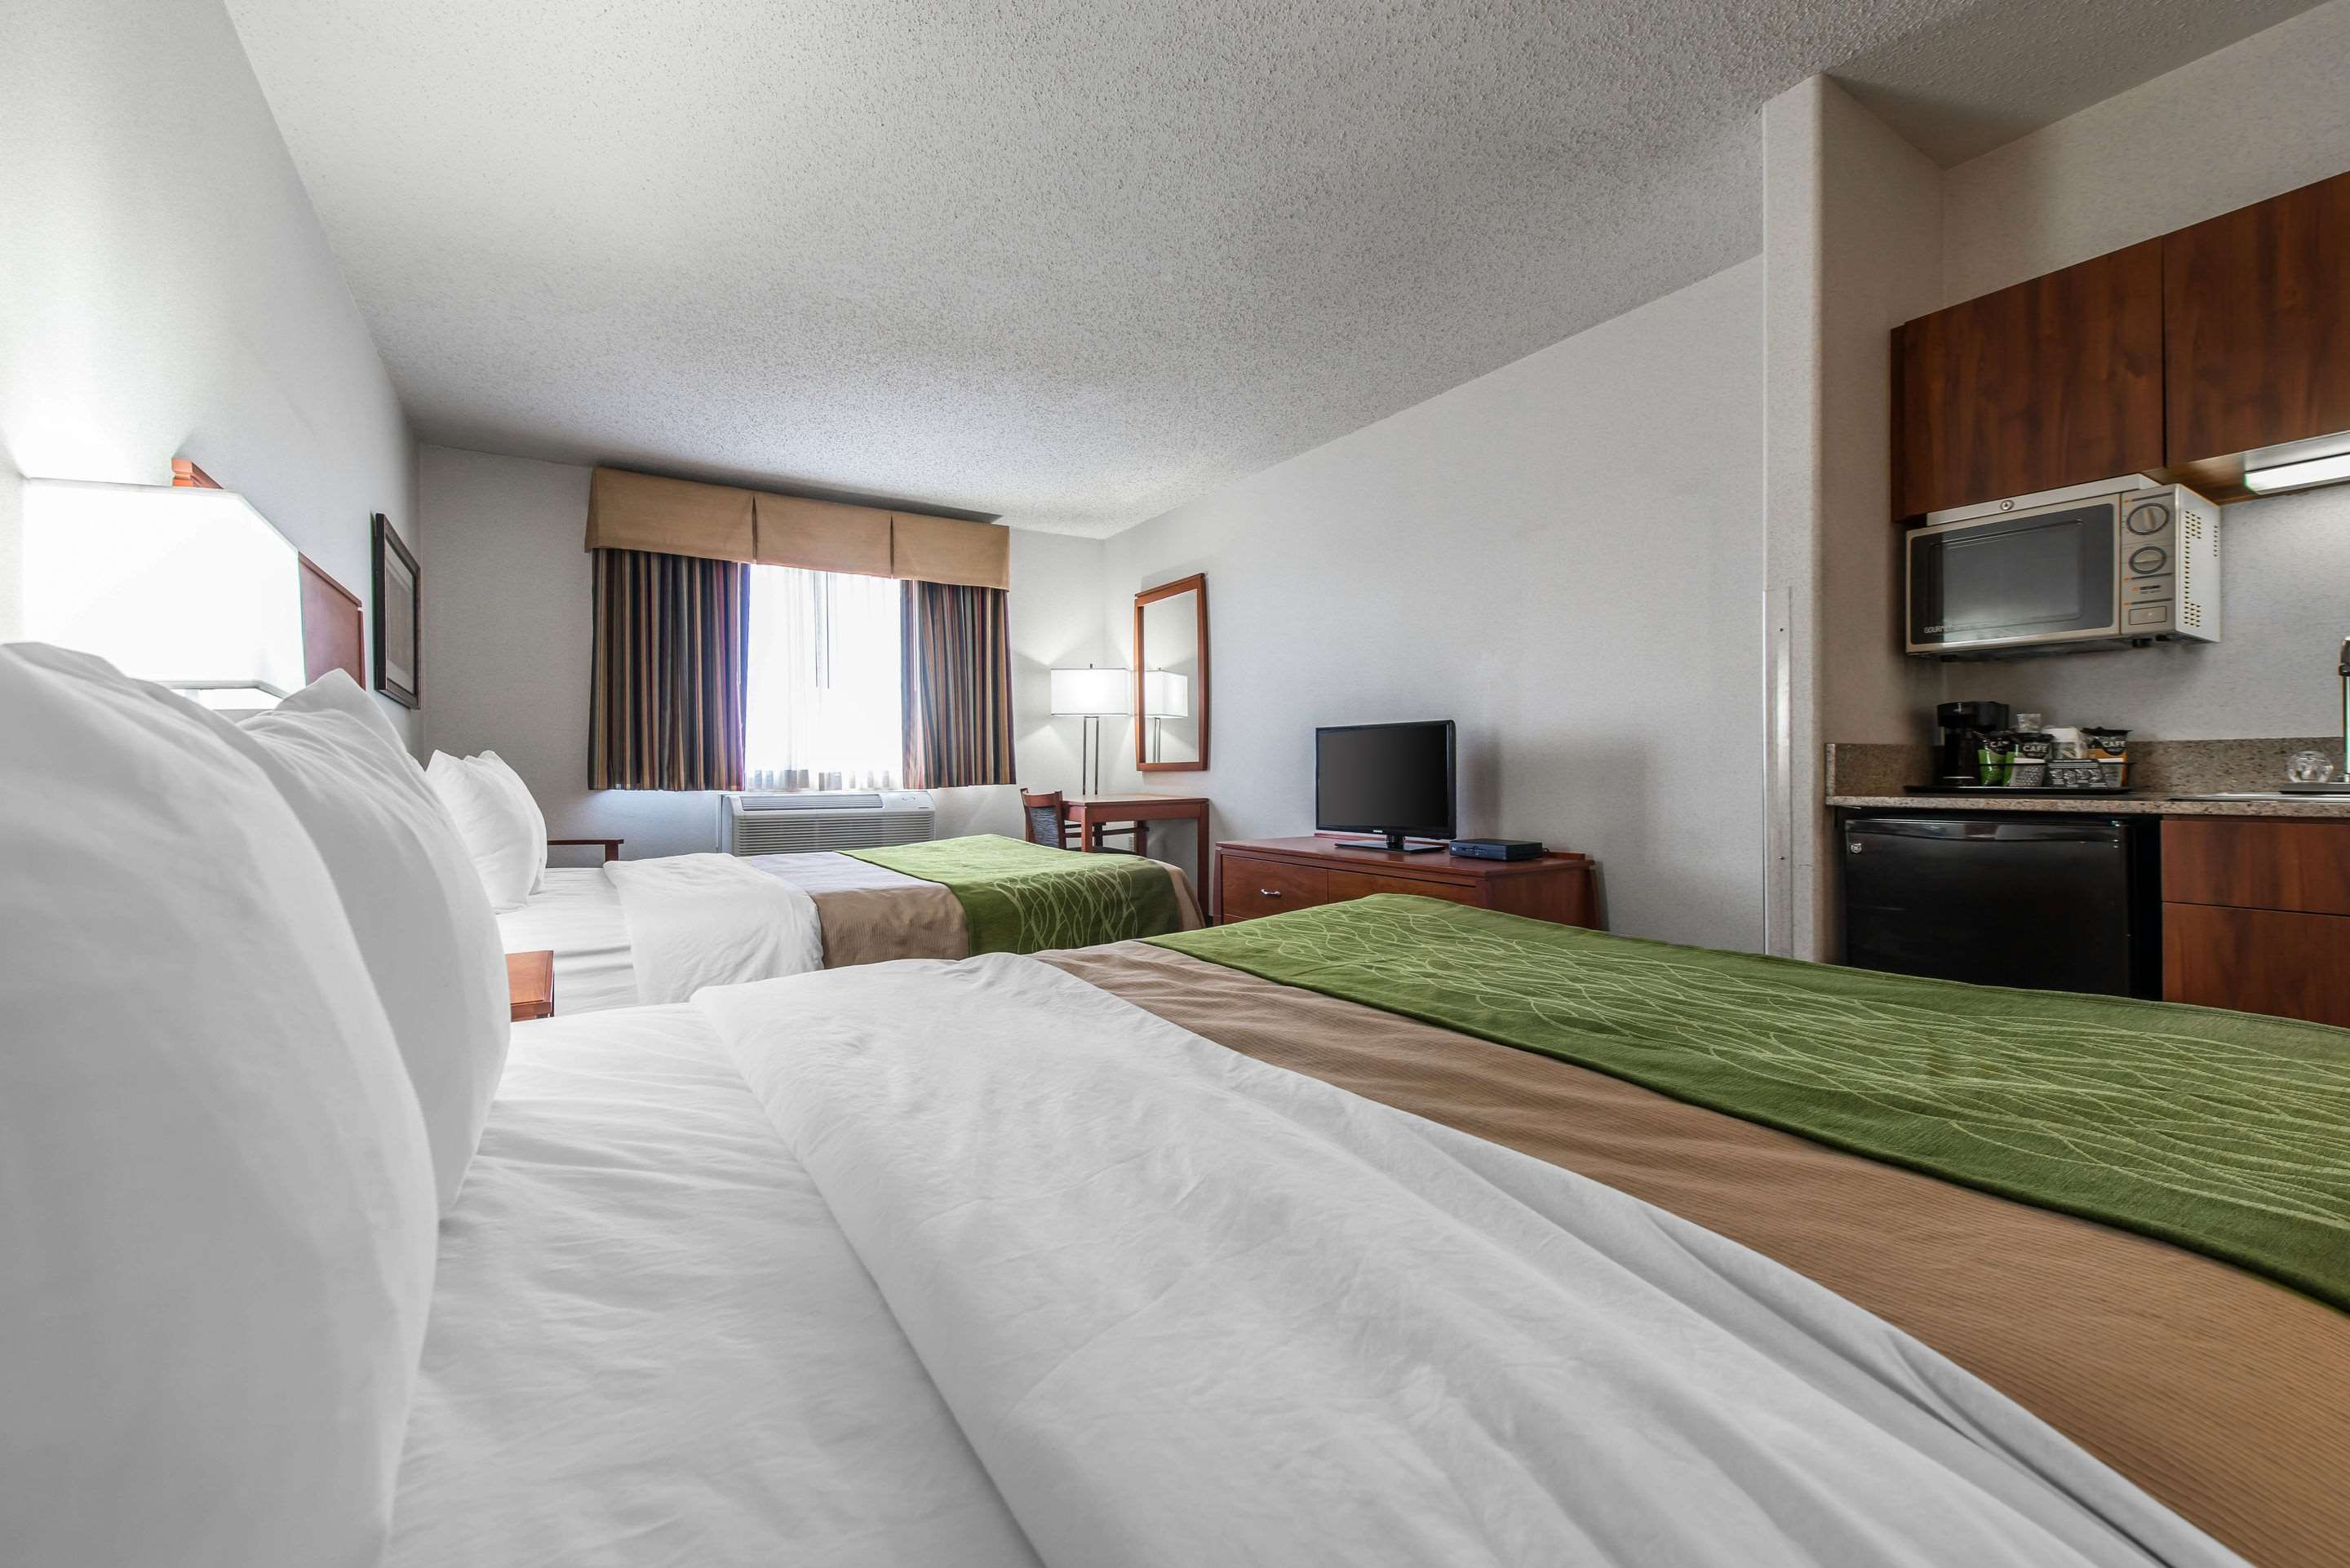 Guest room with amenities